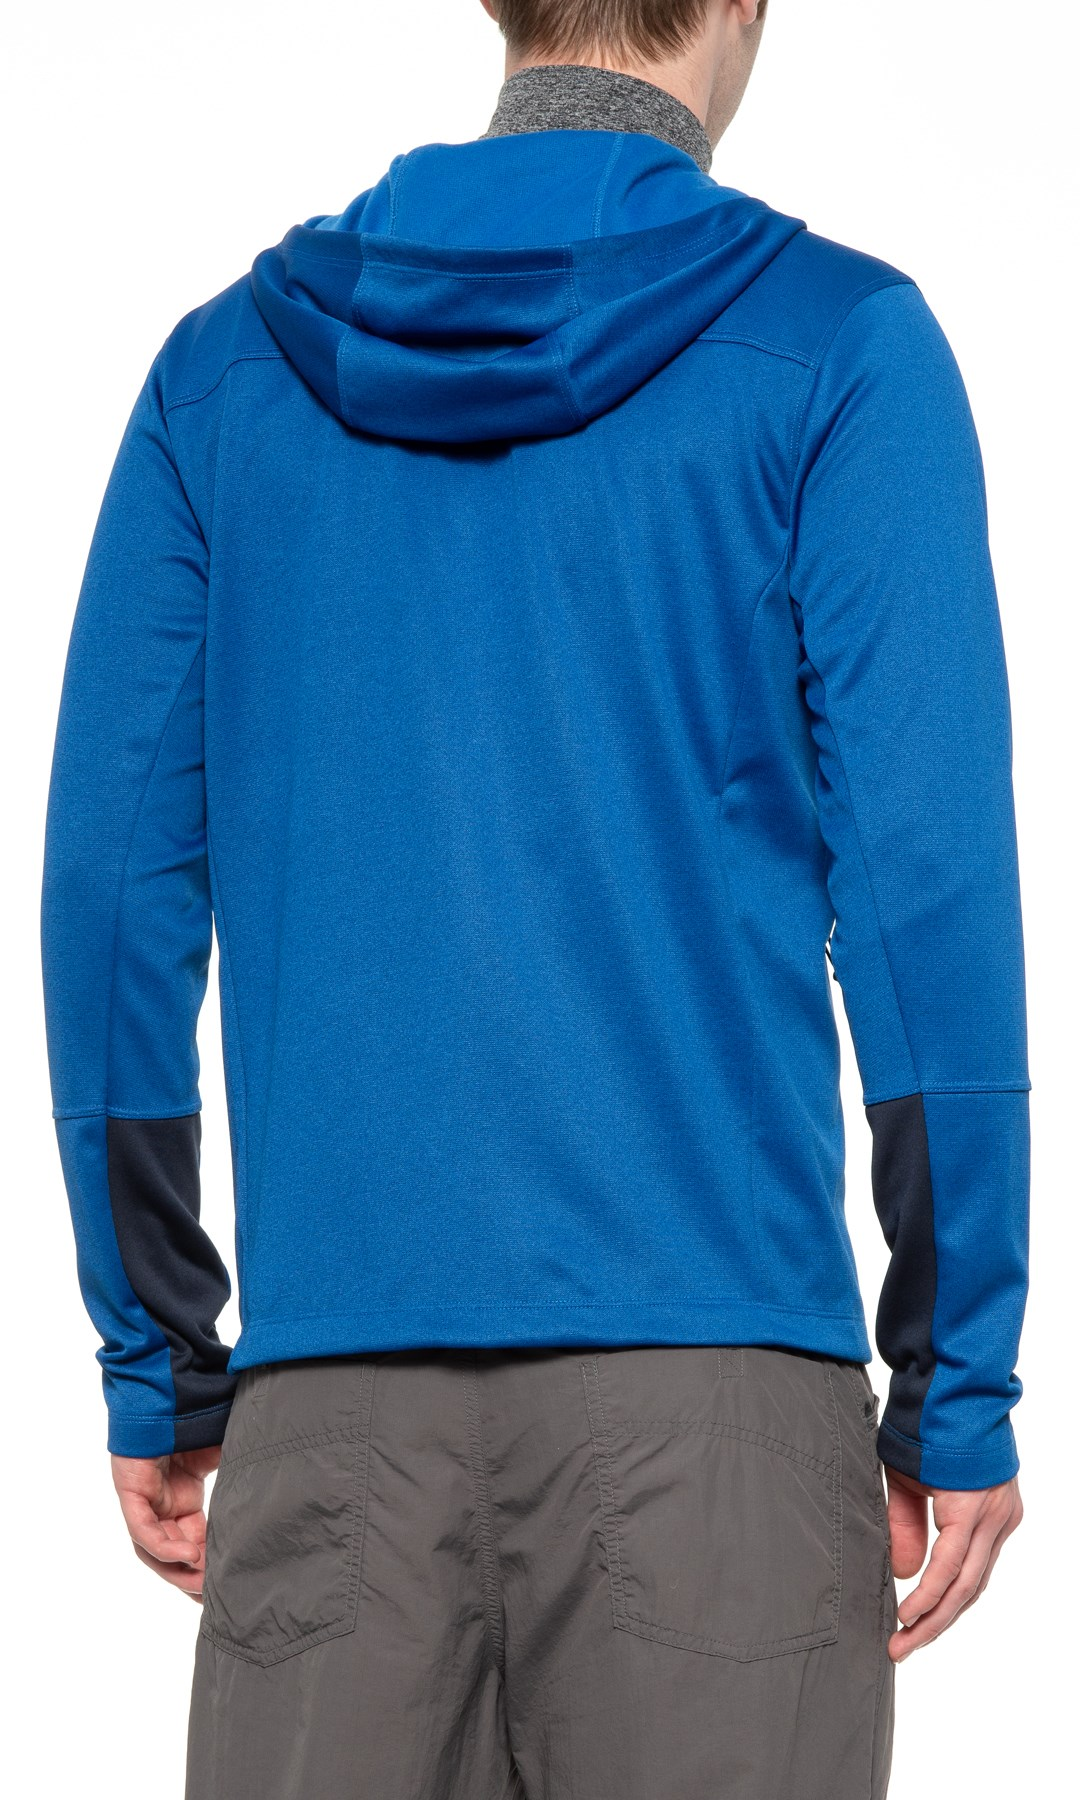 f4eb9b8e9 The North Face Canyonlands Hoodie - Full Zip (For Men)